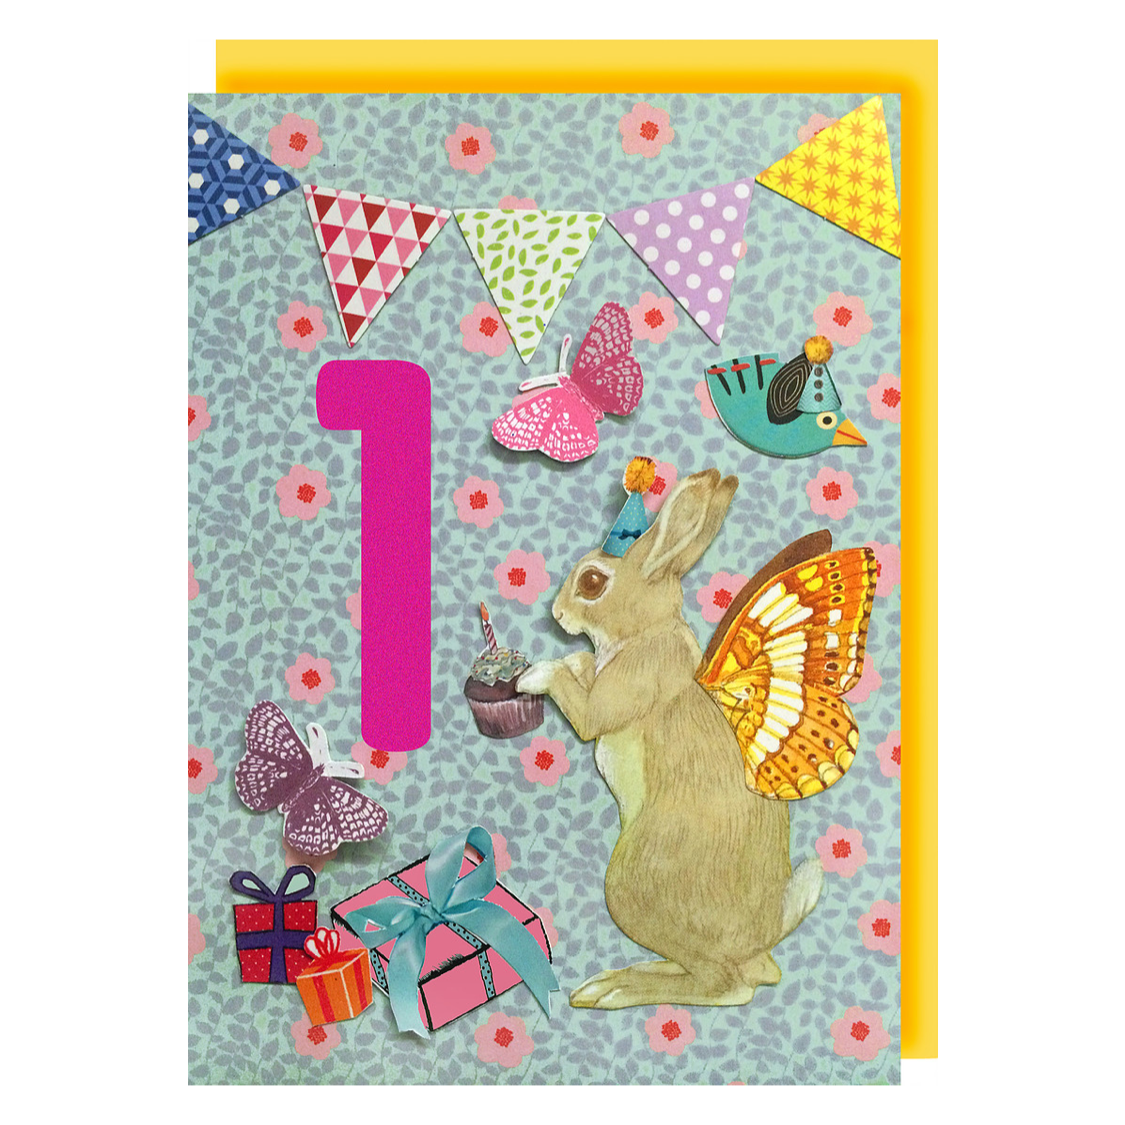 Collage Queen Age 1 Birthday Card Bunny And Butterflies